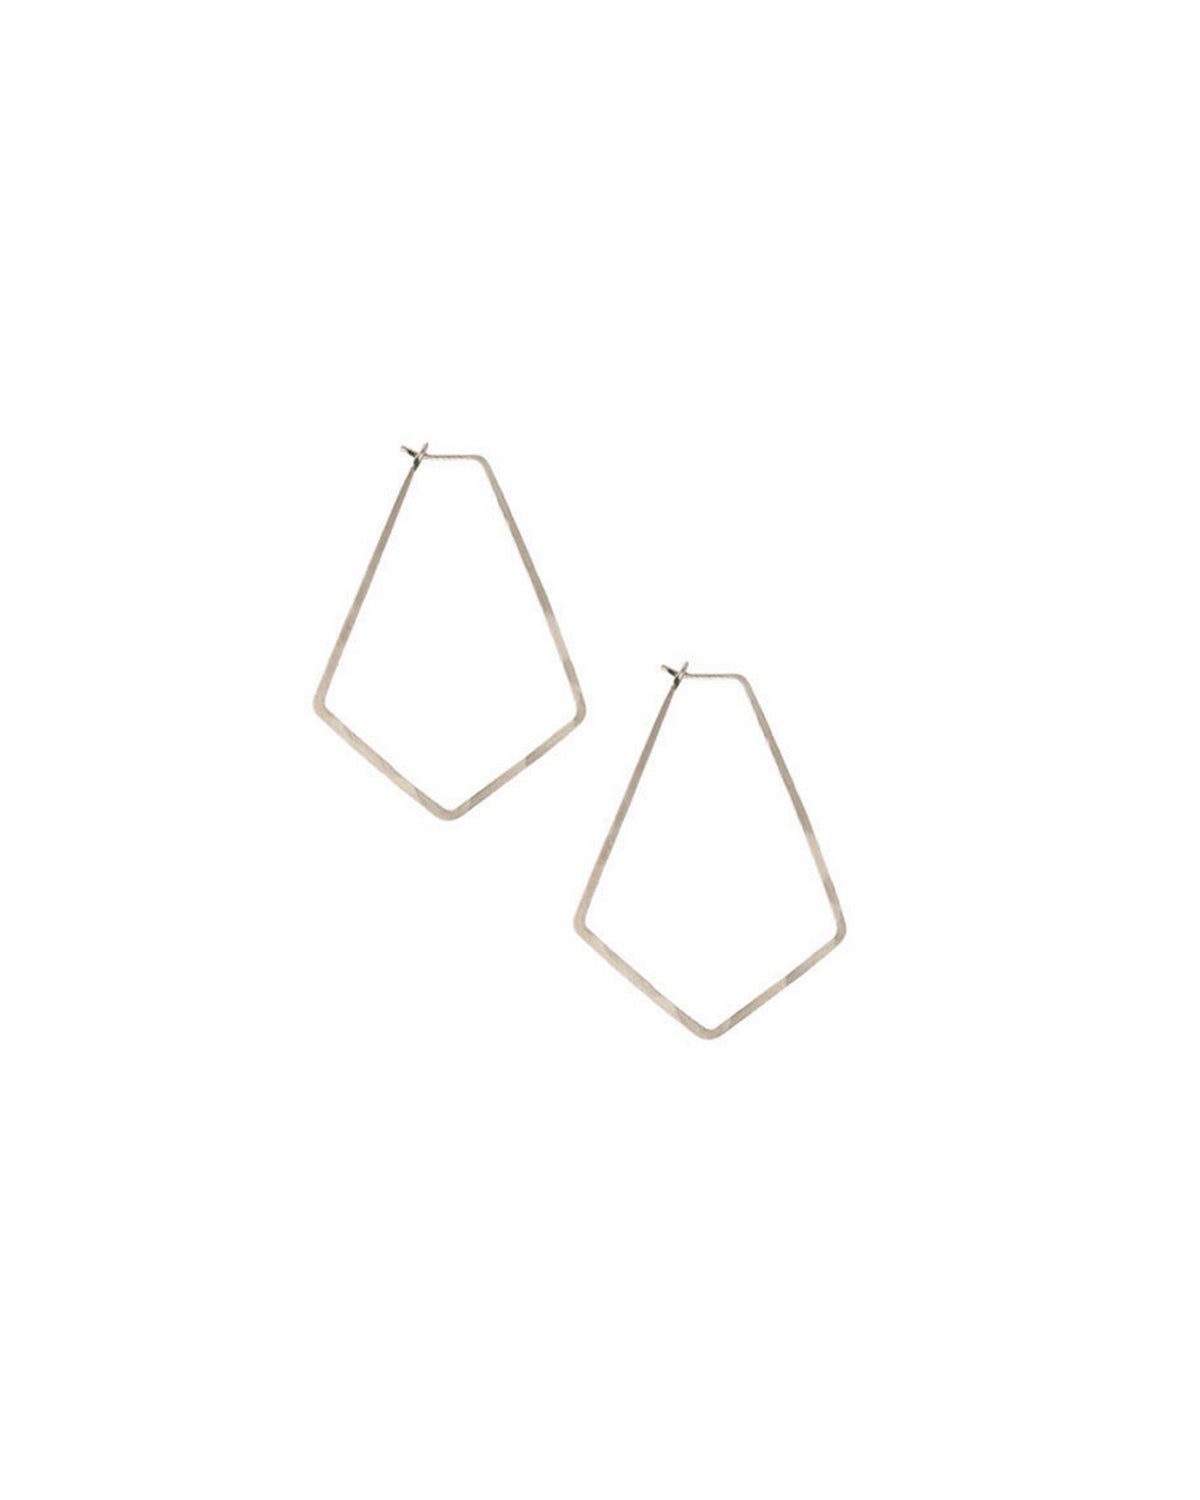 Kris Nations Jewelry Silver / O/S Small Marquis Hoops